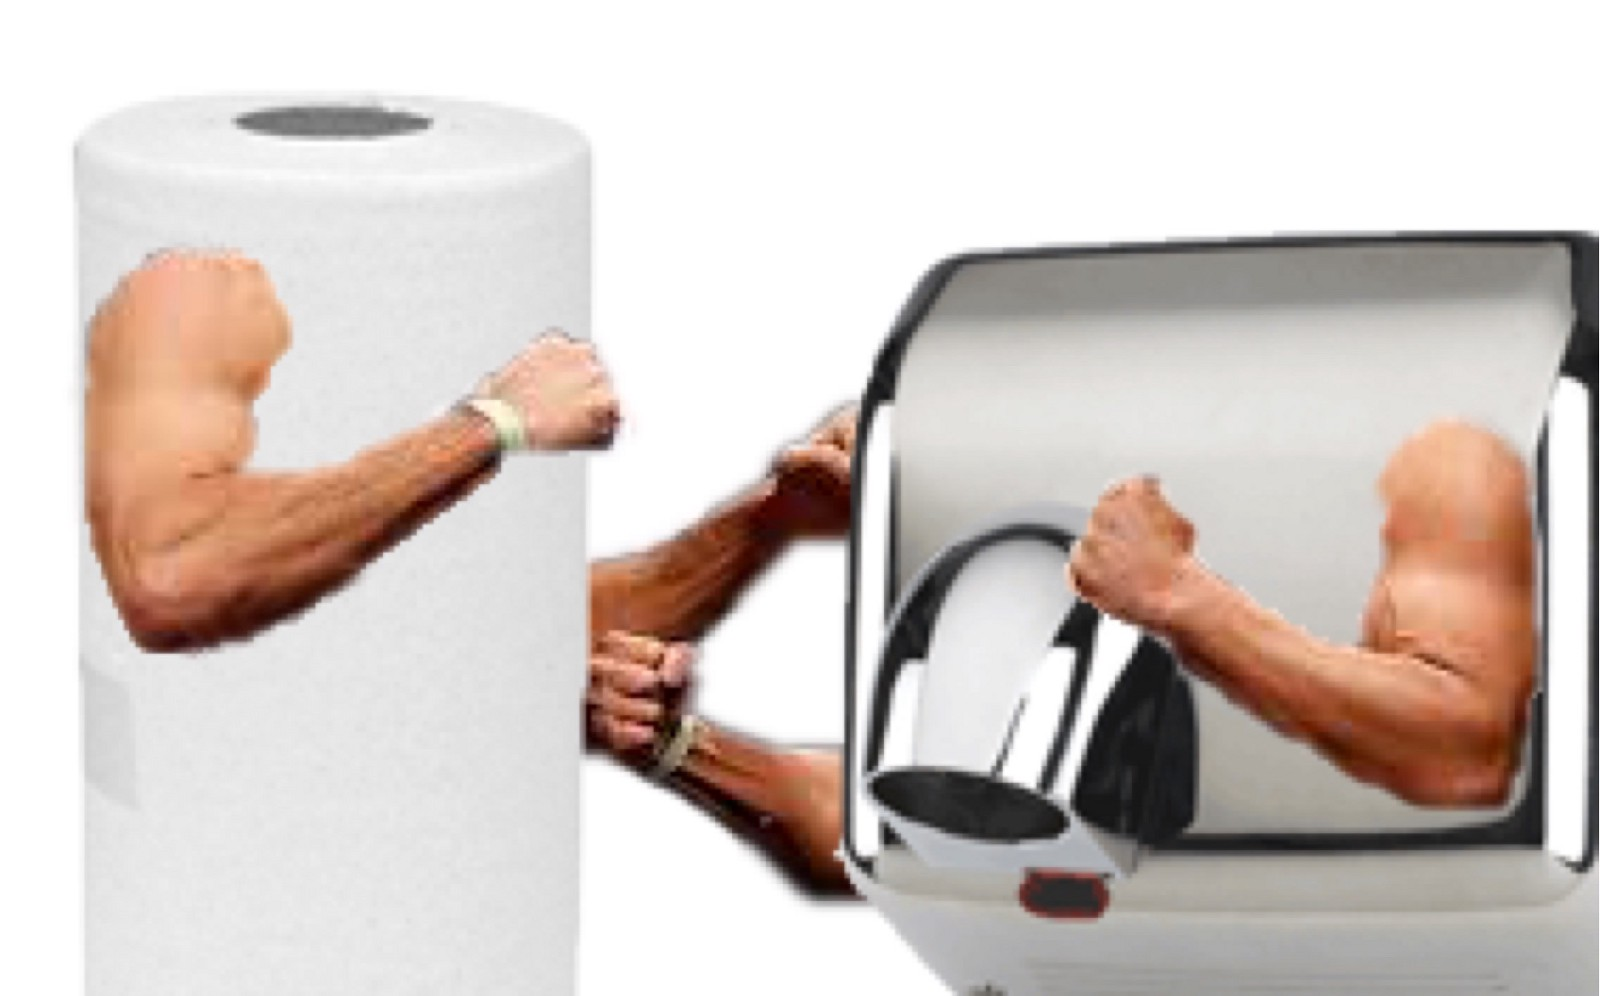 How to Dry Your Hands with One Paper Towel How to Dry Your Hands with One Paper Towel new images